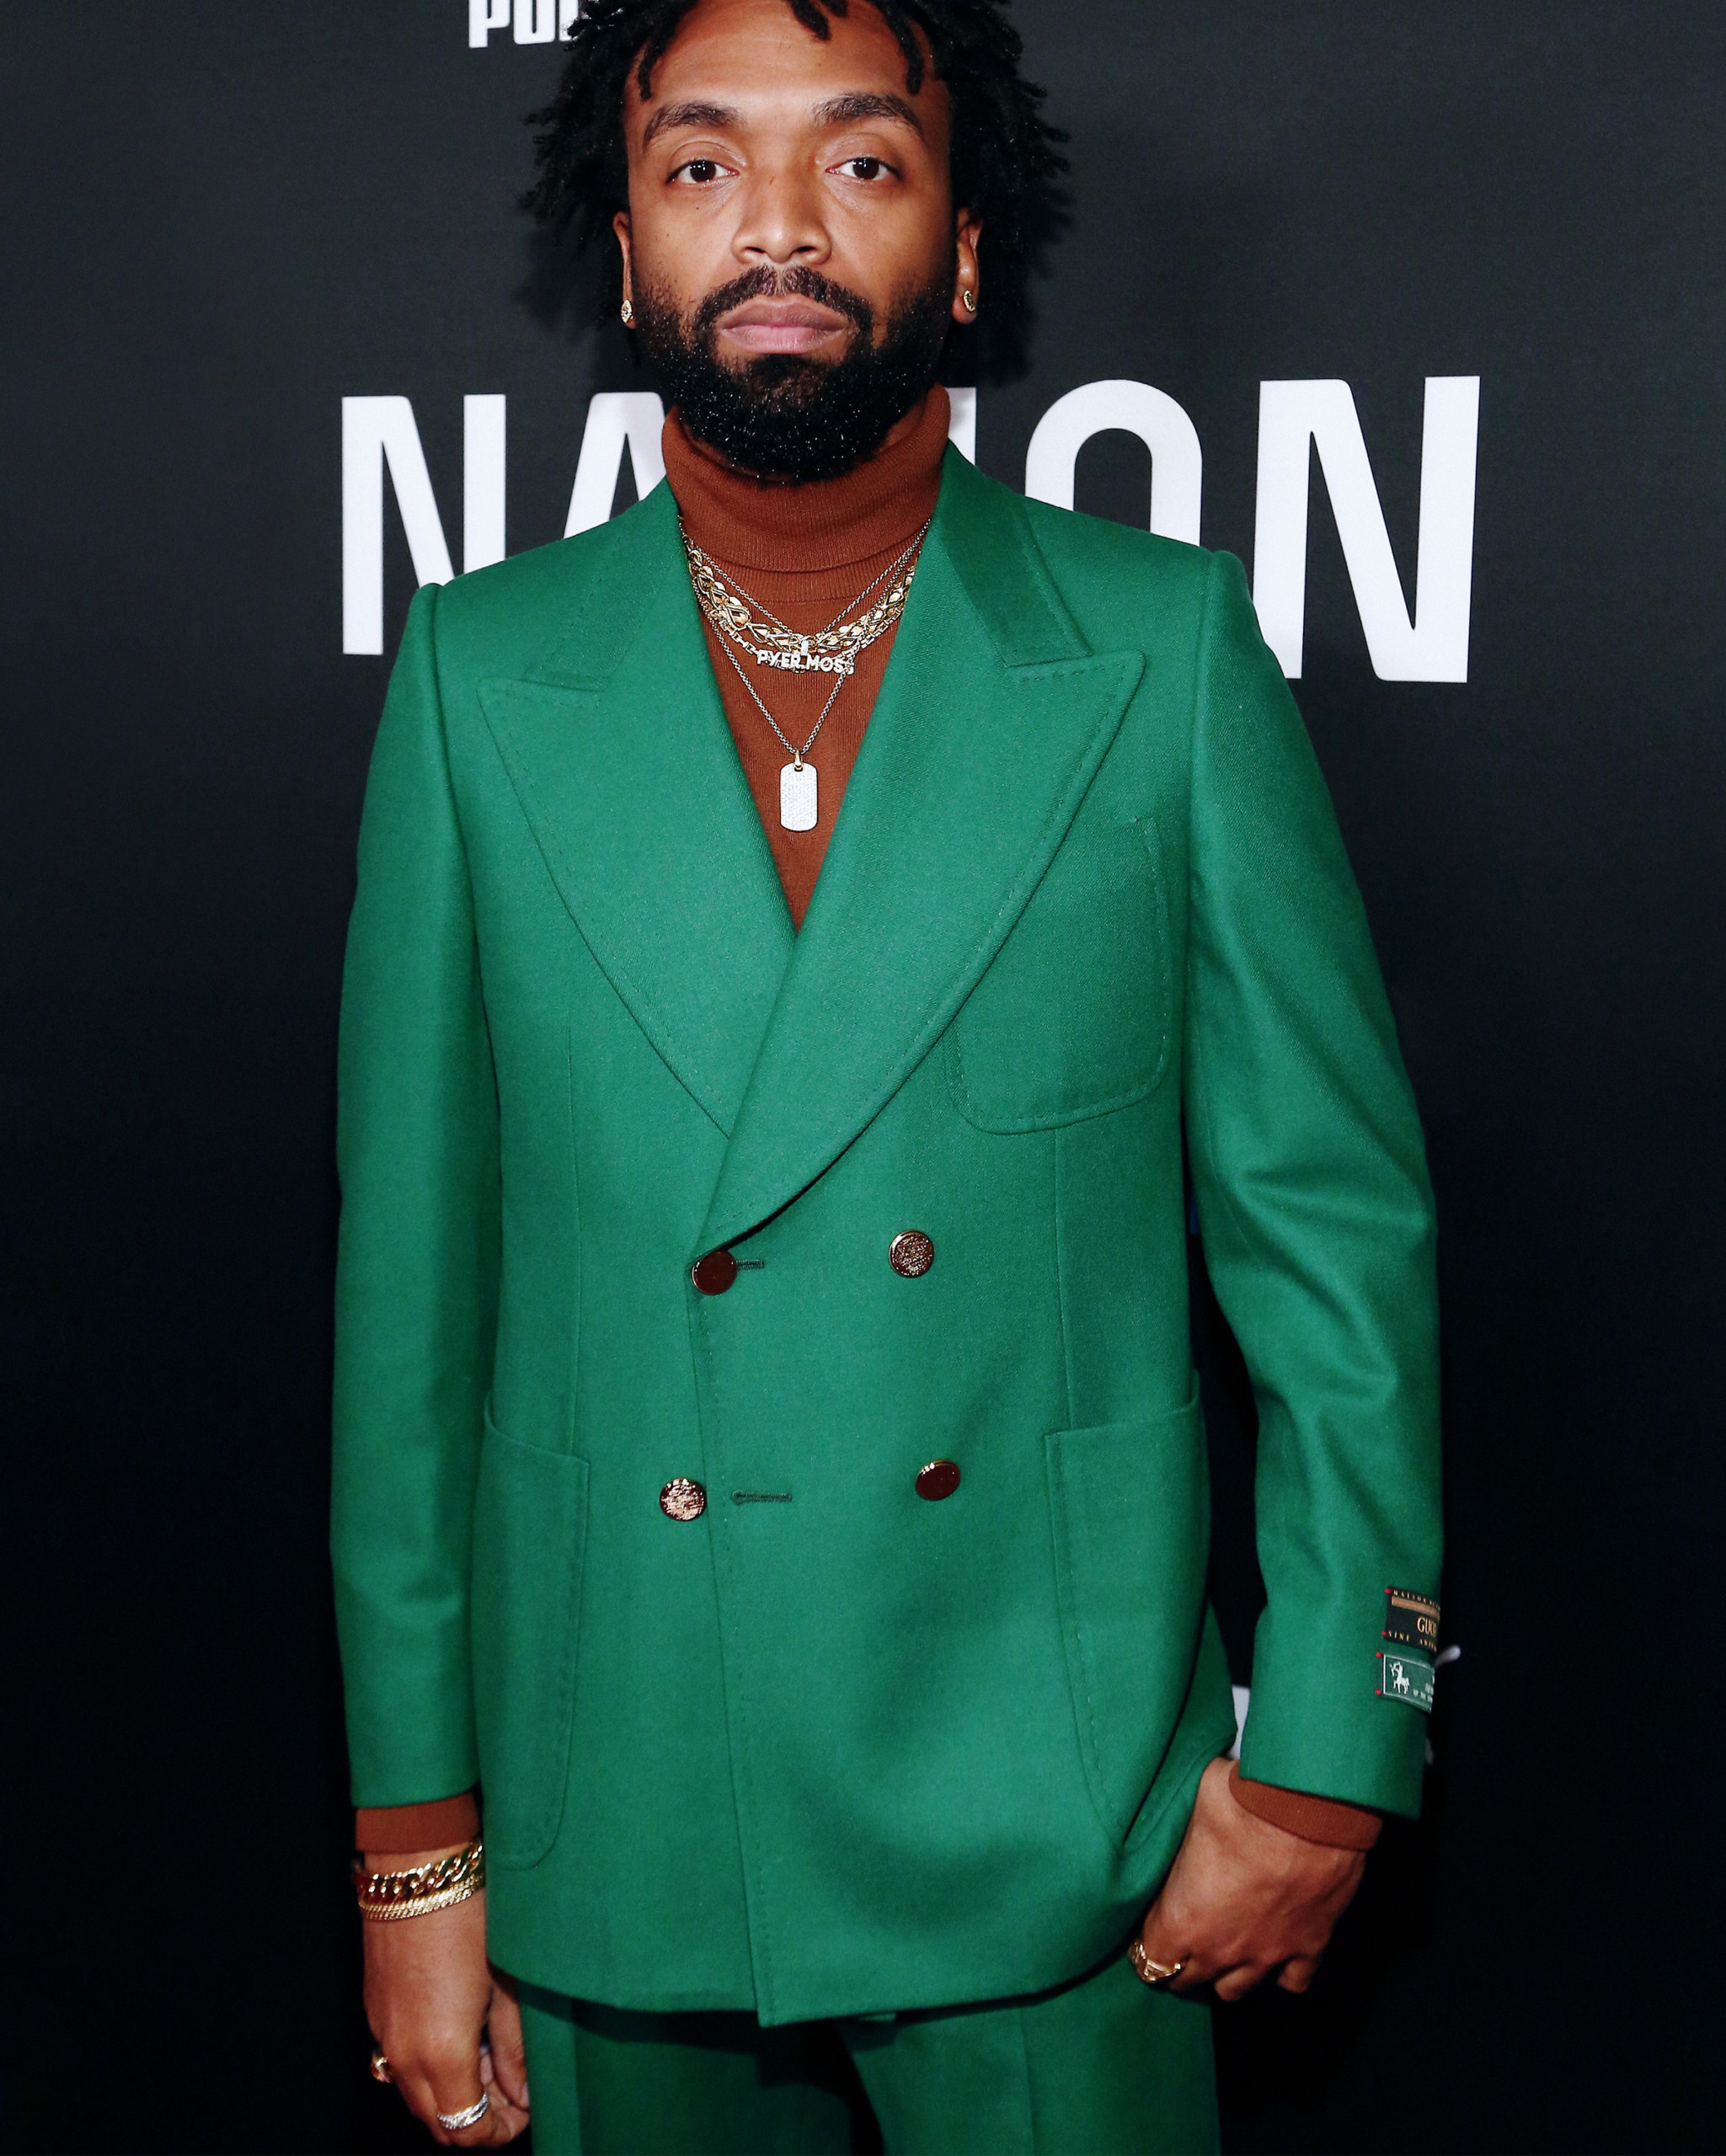 Kerby Jean-Raymond at the 2020 Roc Nation Brunch wearing a kelly green suit and a selection of retro jewelry including a set of gold chain necklaces and custom diamond stud earrings from Shelley & Co